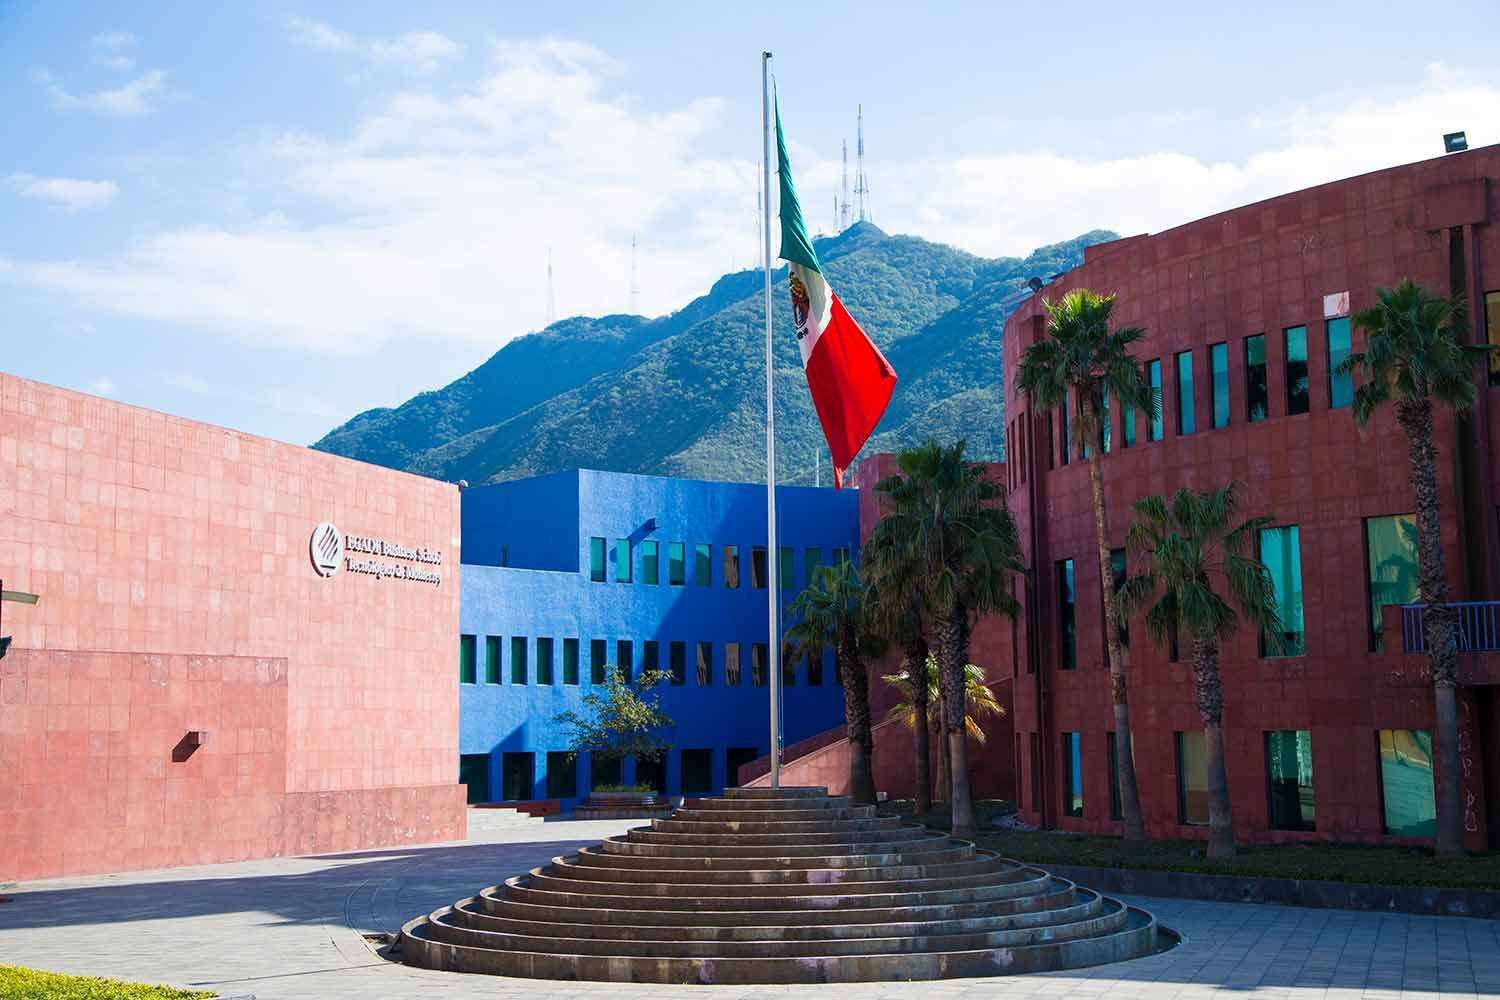 The Mexican flag waves outside the main building of the EGADE Business School with a green mountainside in the background